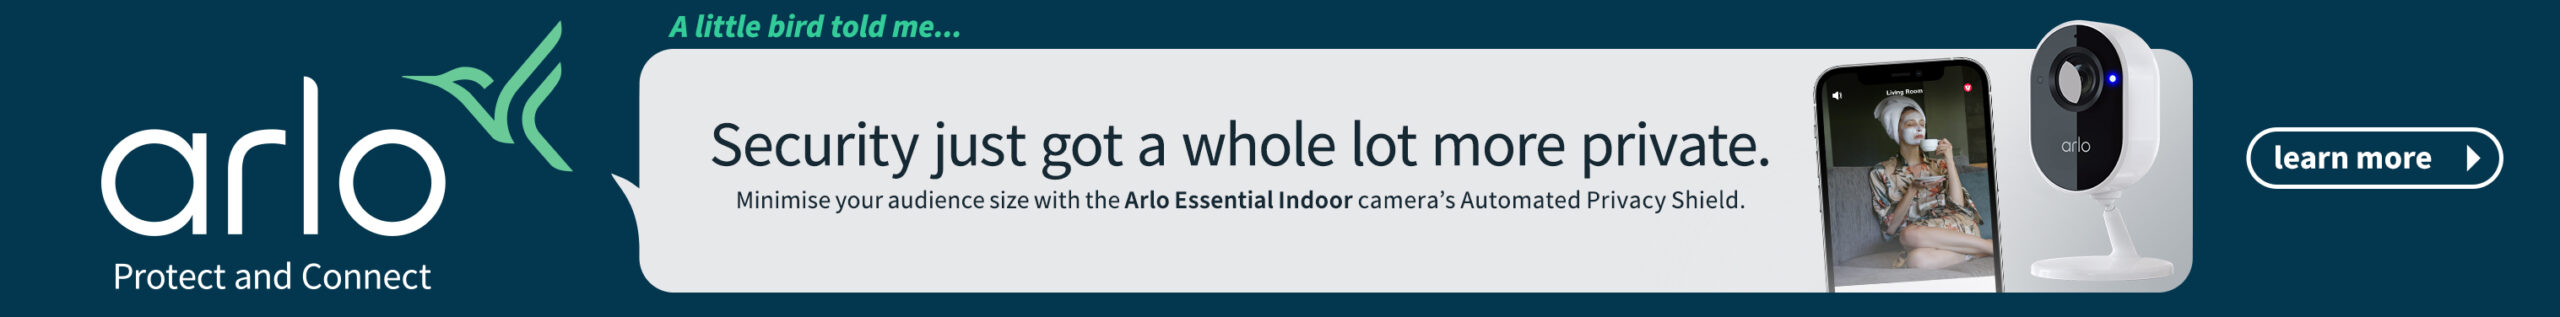 ARL0355 Arlo ESS Indoor Generic Banner 728x90 V4 scaled Amazon Shock $264m Loss But Sales + 30%